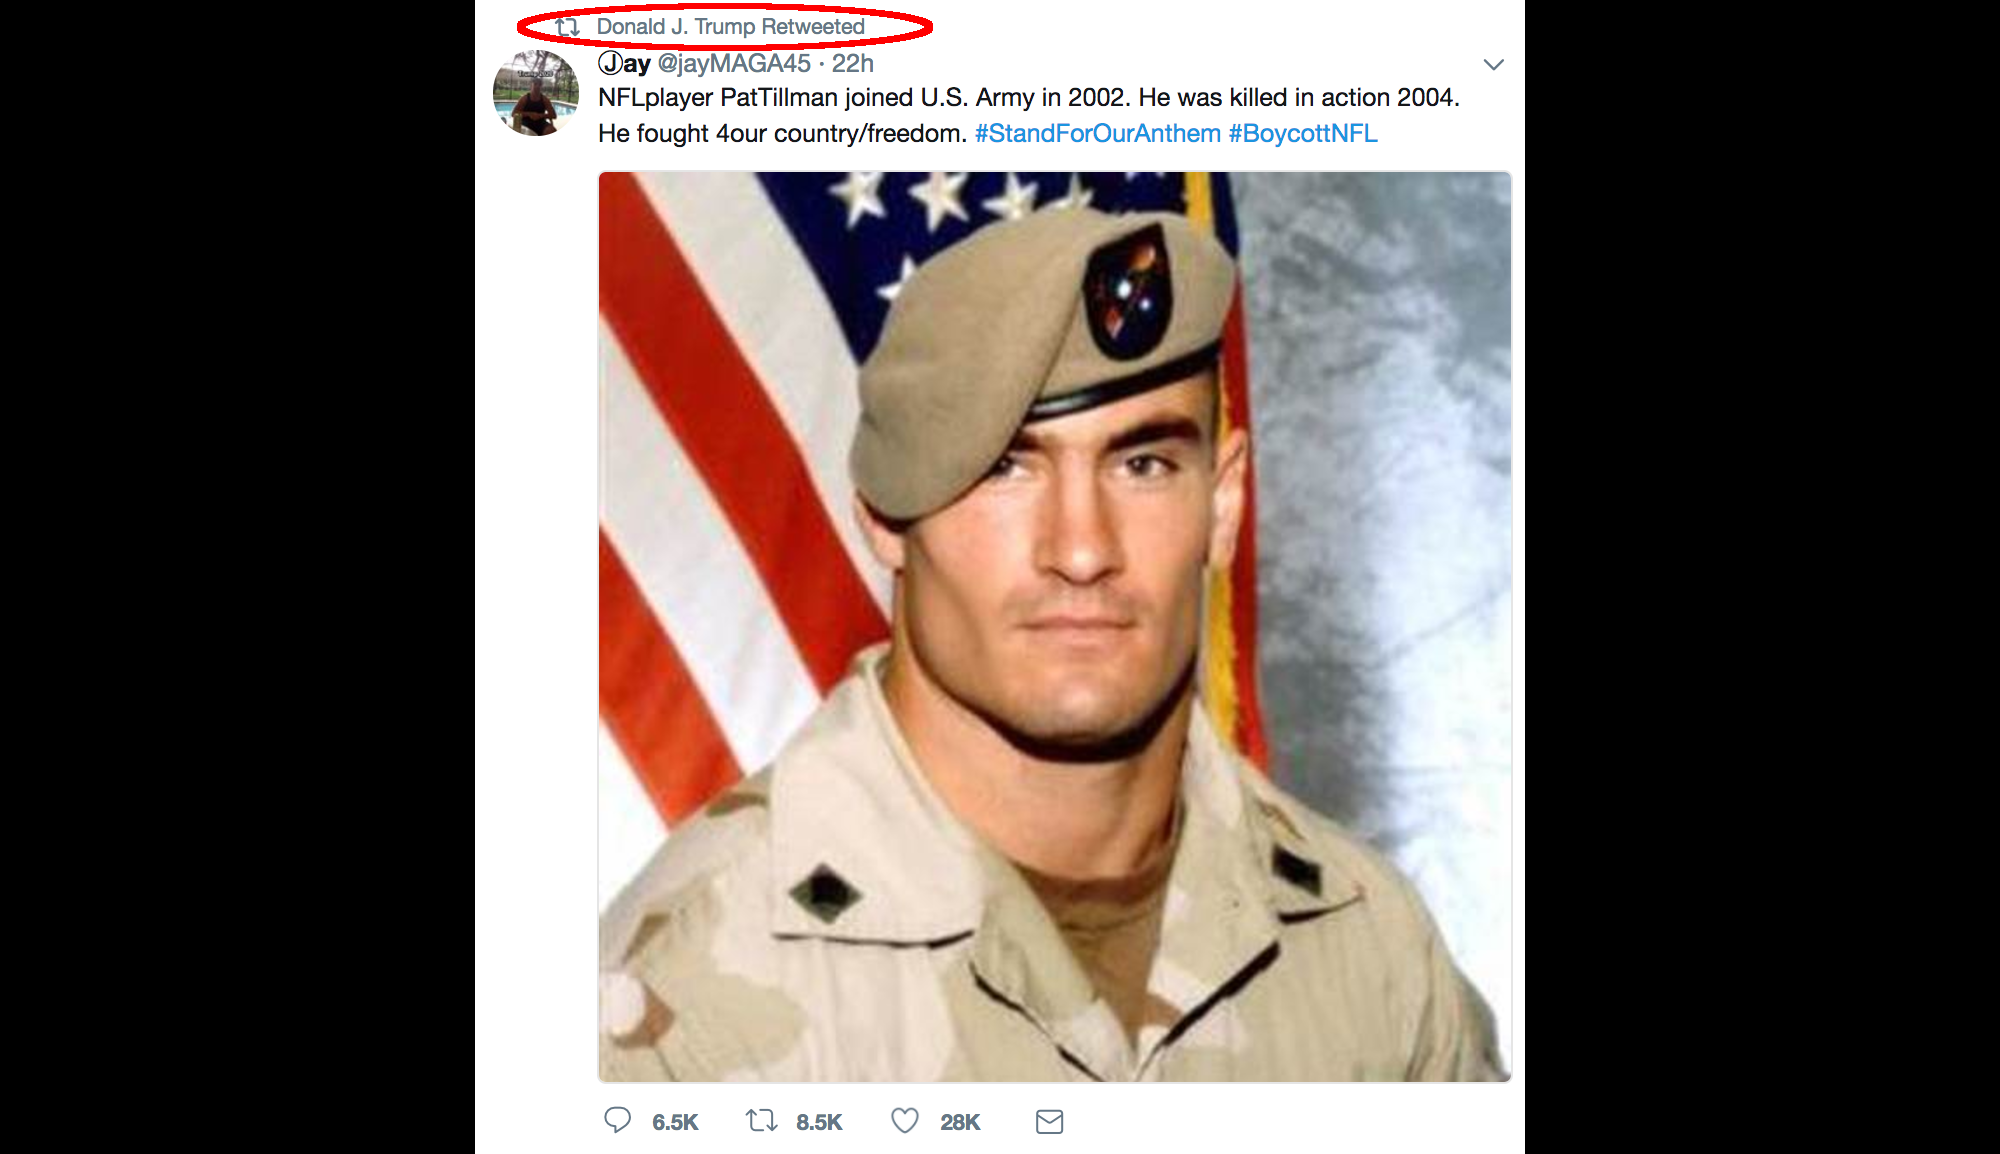 Trump Retweets Meme With Atheist Soldier (Who Opposed Conservative Policies)